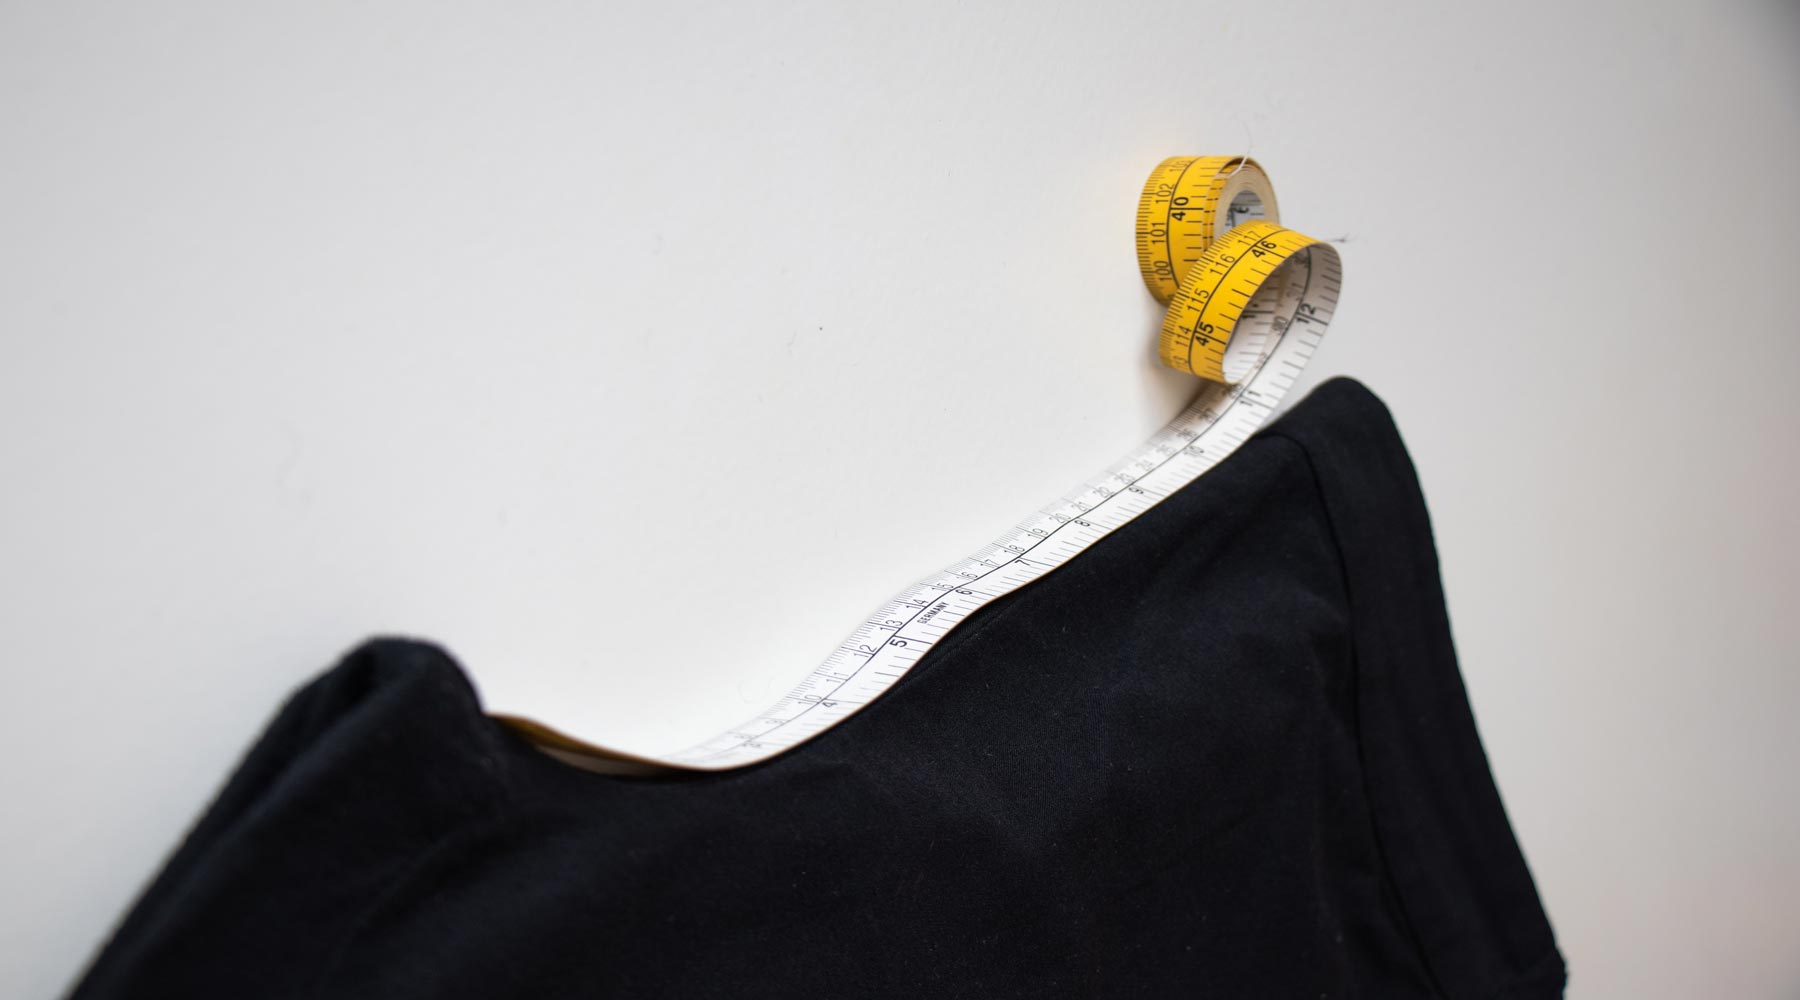 Measuring tape showing how to measure the front rise of a pair of trousers